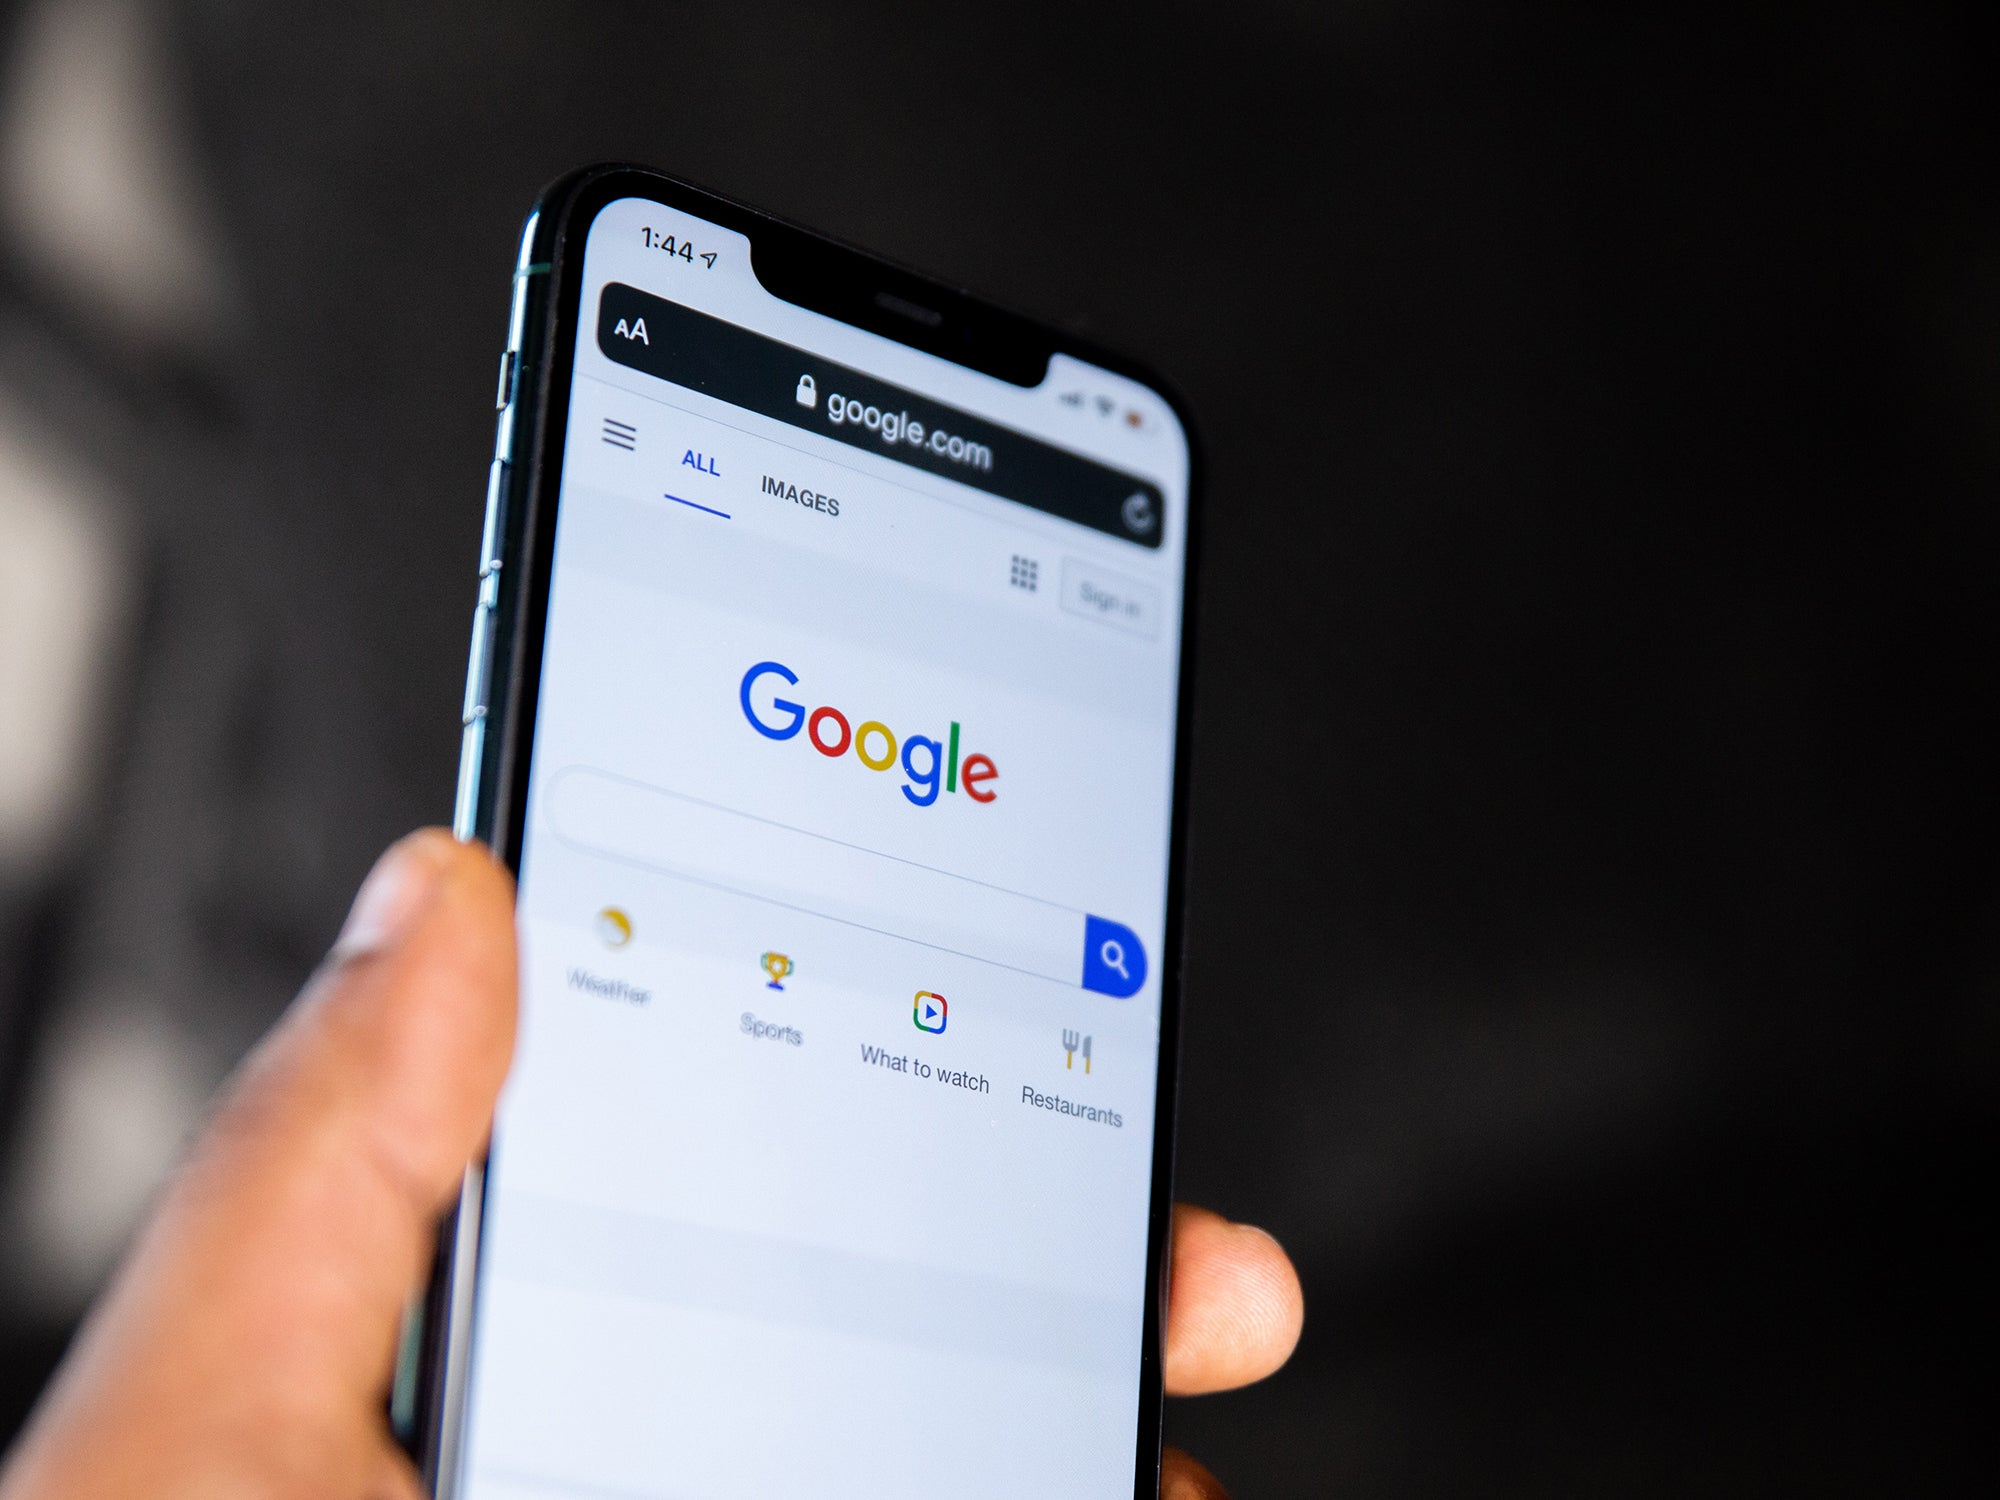 an Apple iPhone with the Google search engine up on the screen